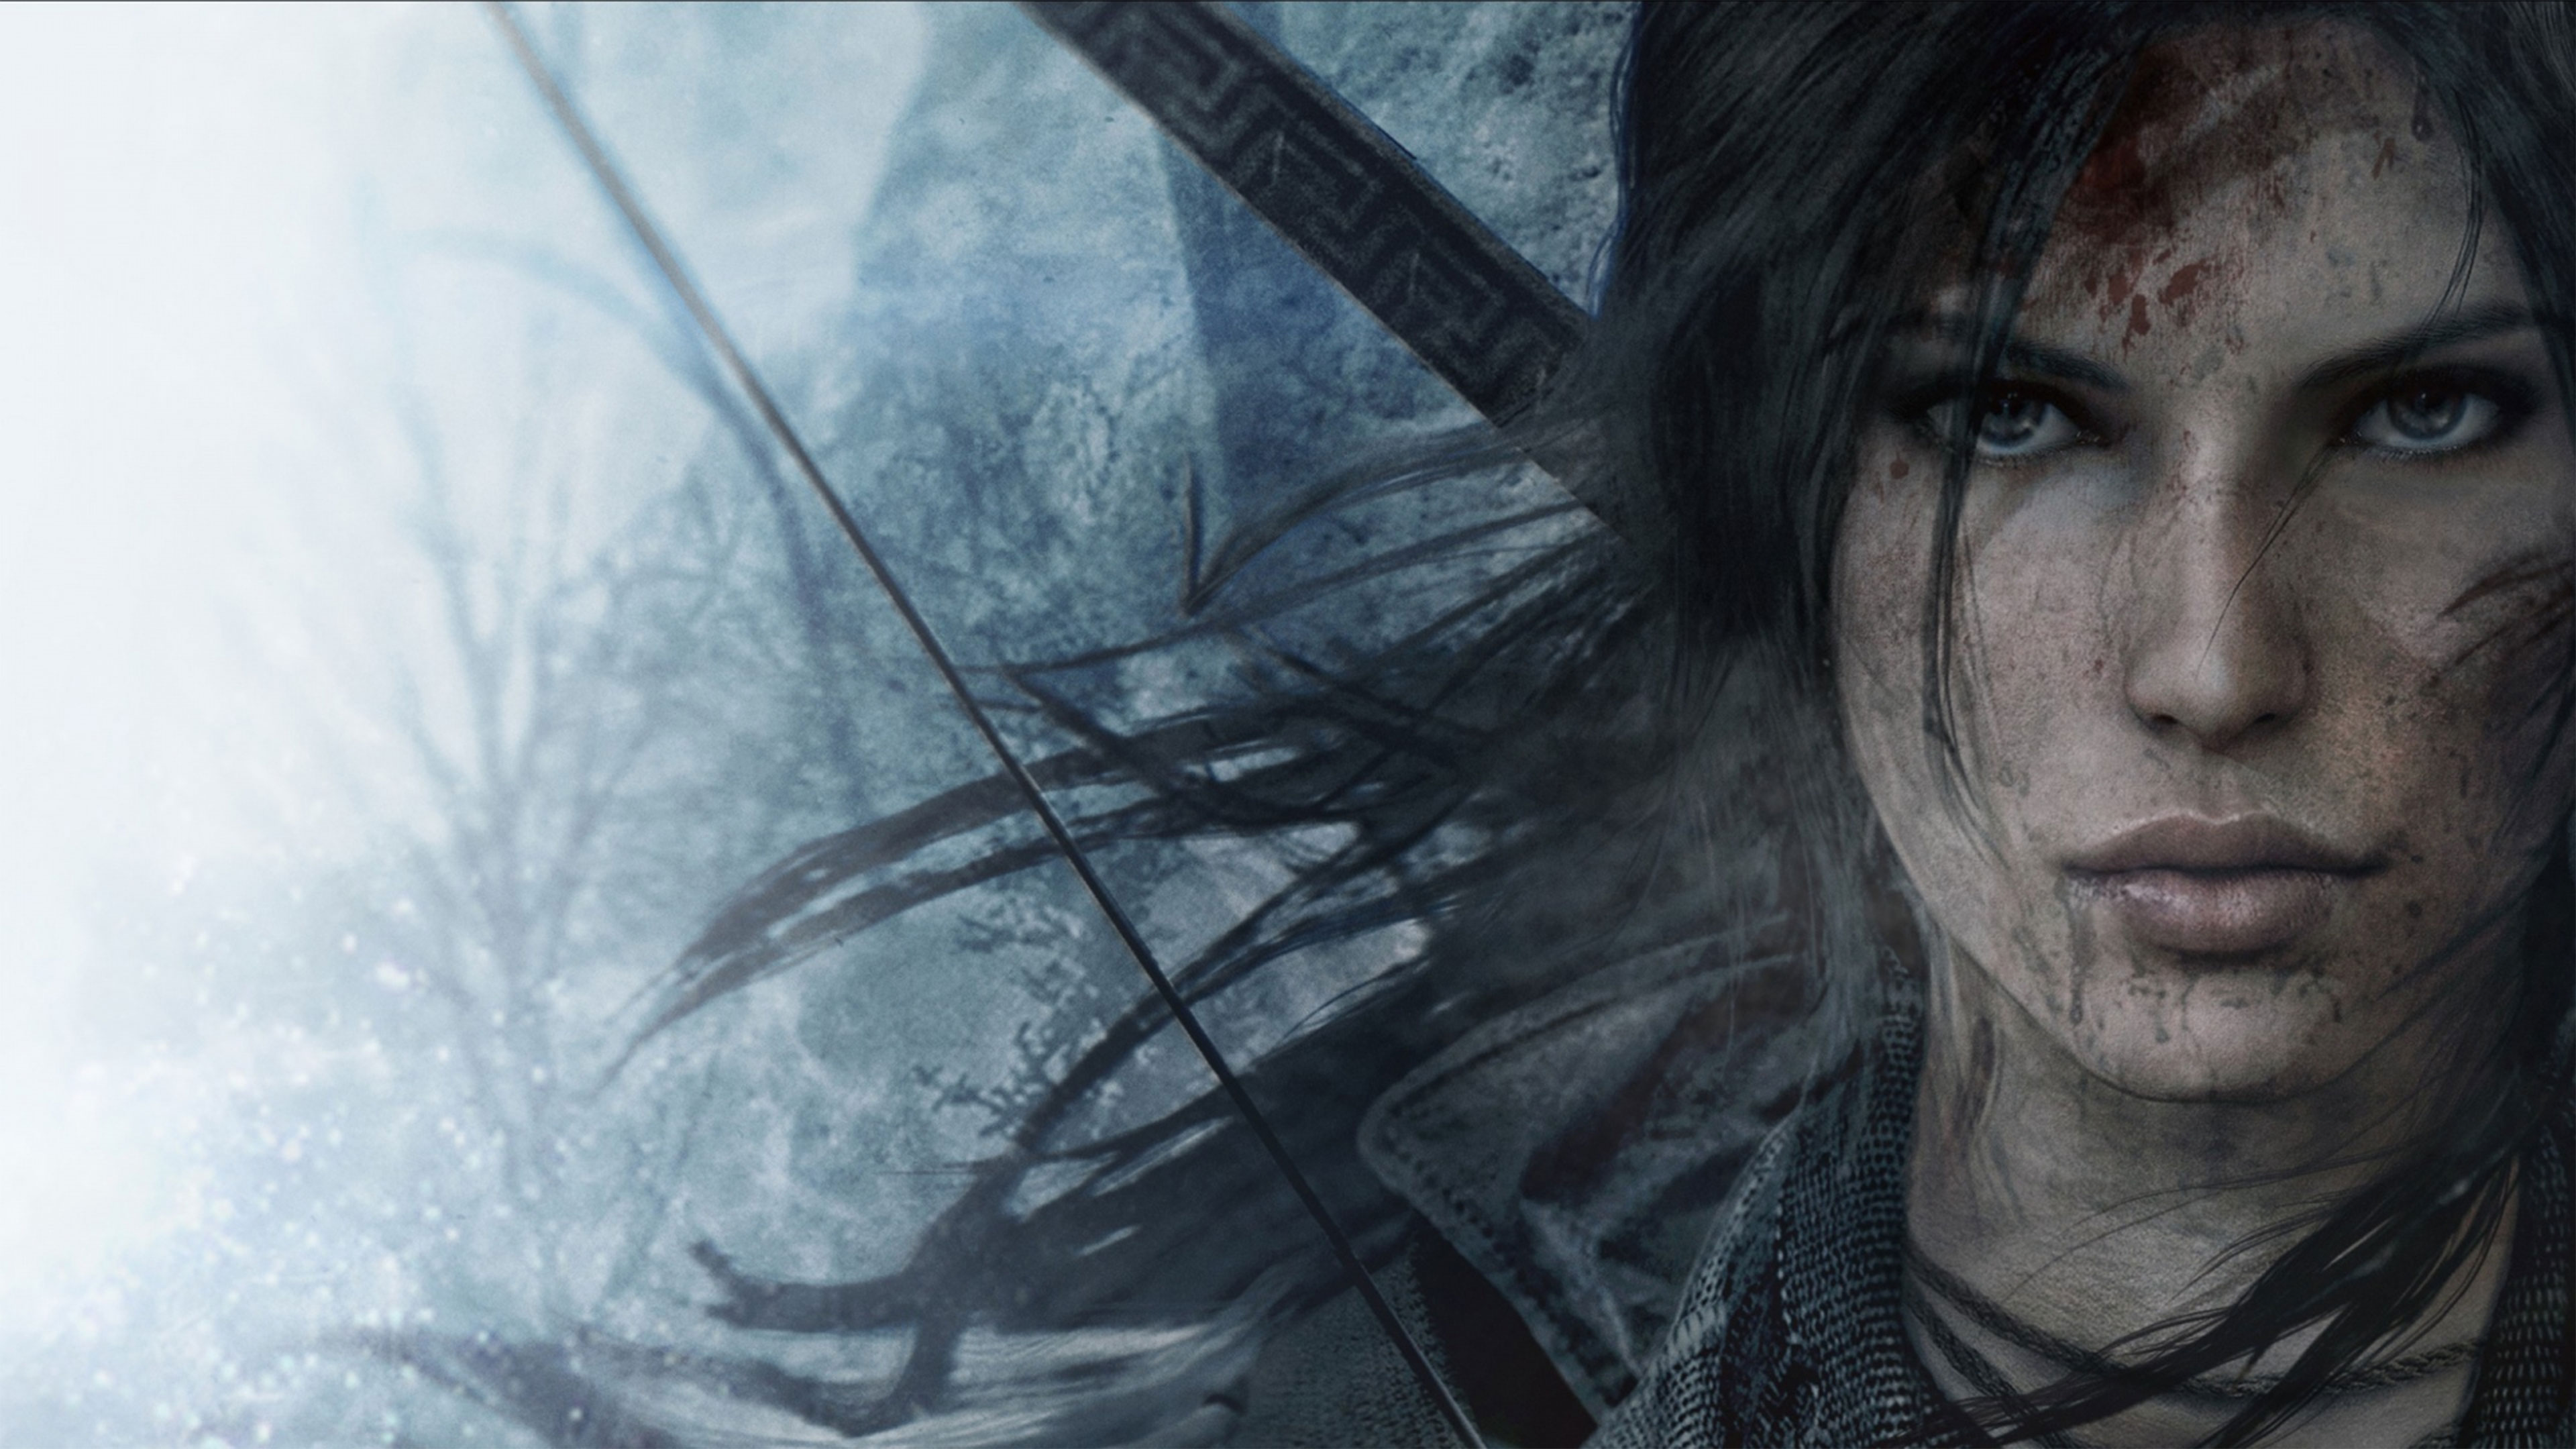 Rise Of The Tomb Raider Wallpapers In Ultra Hd 4k Gameranx